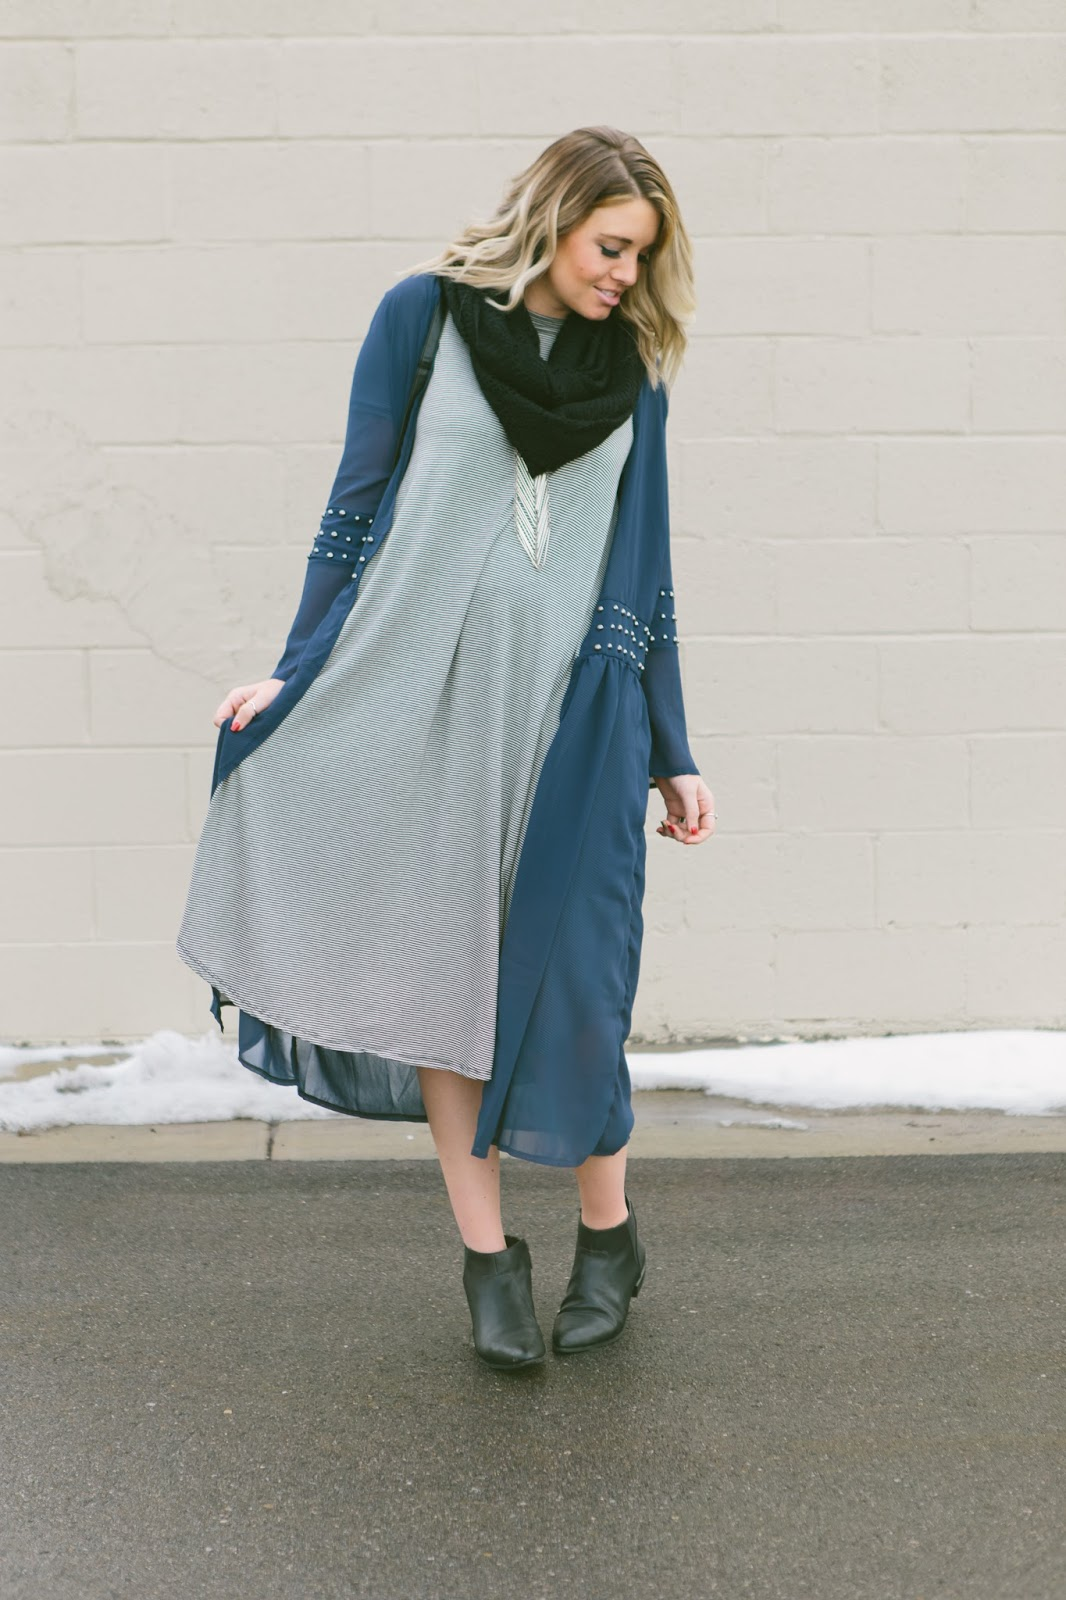 Postpartum Outfit, Utah Fashion Blogger, Modest Fashion Blogger